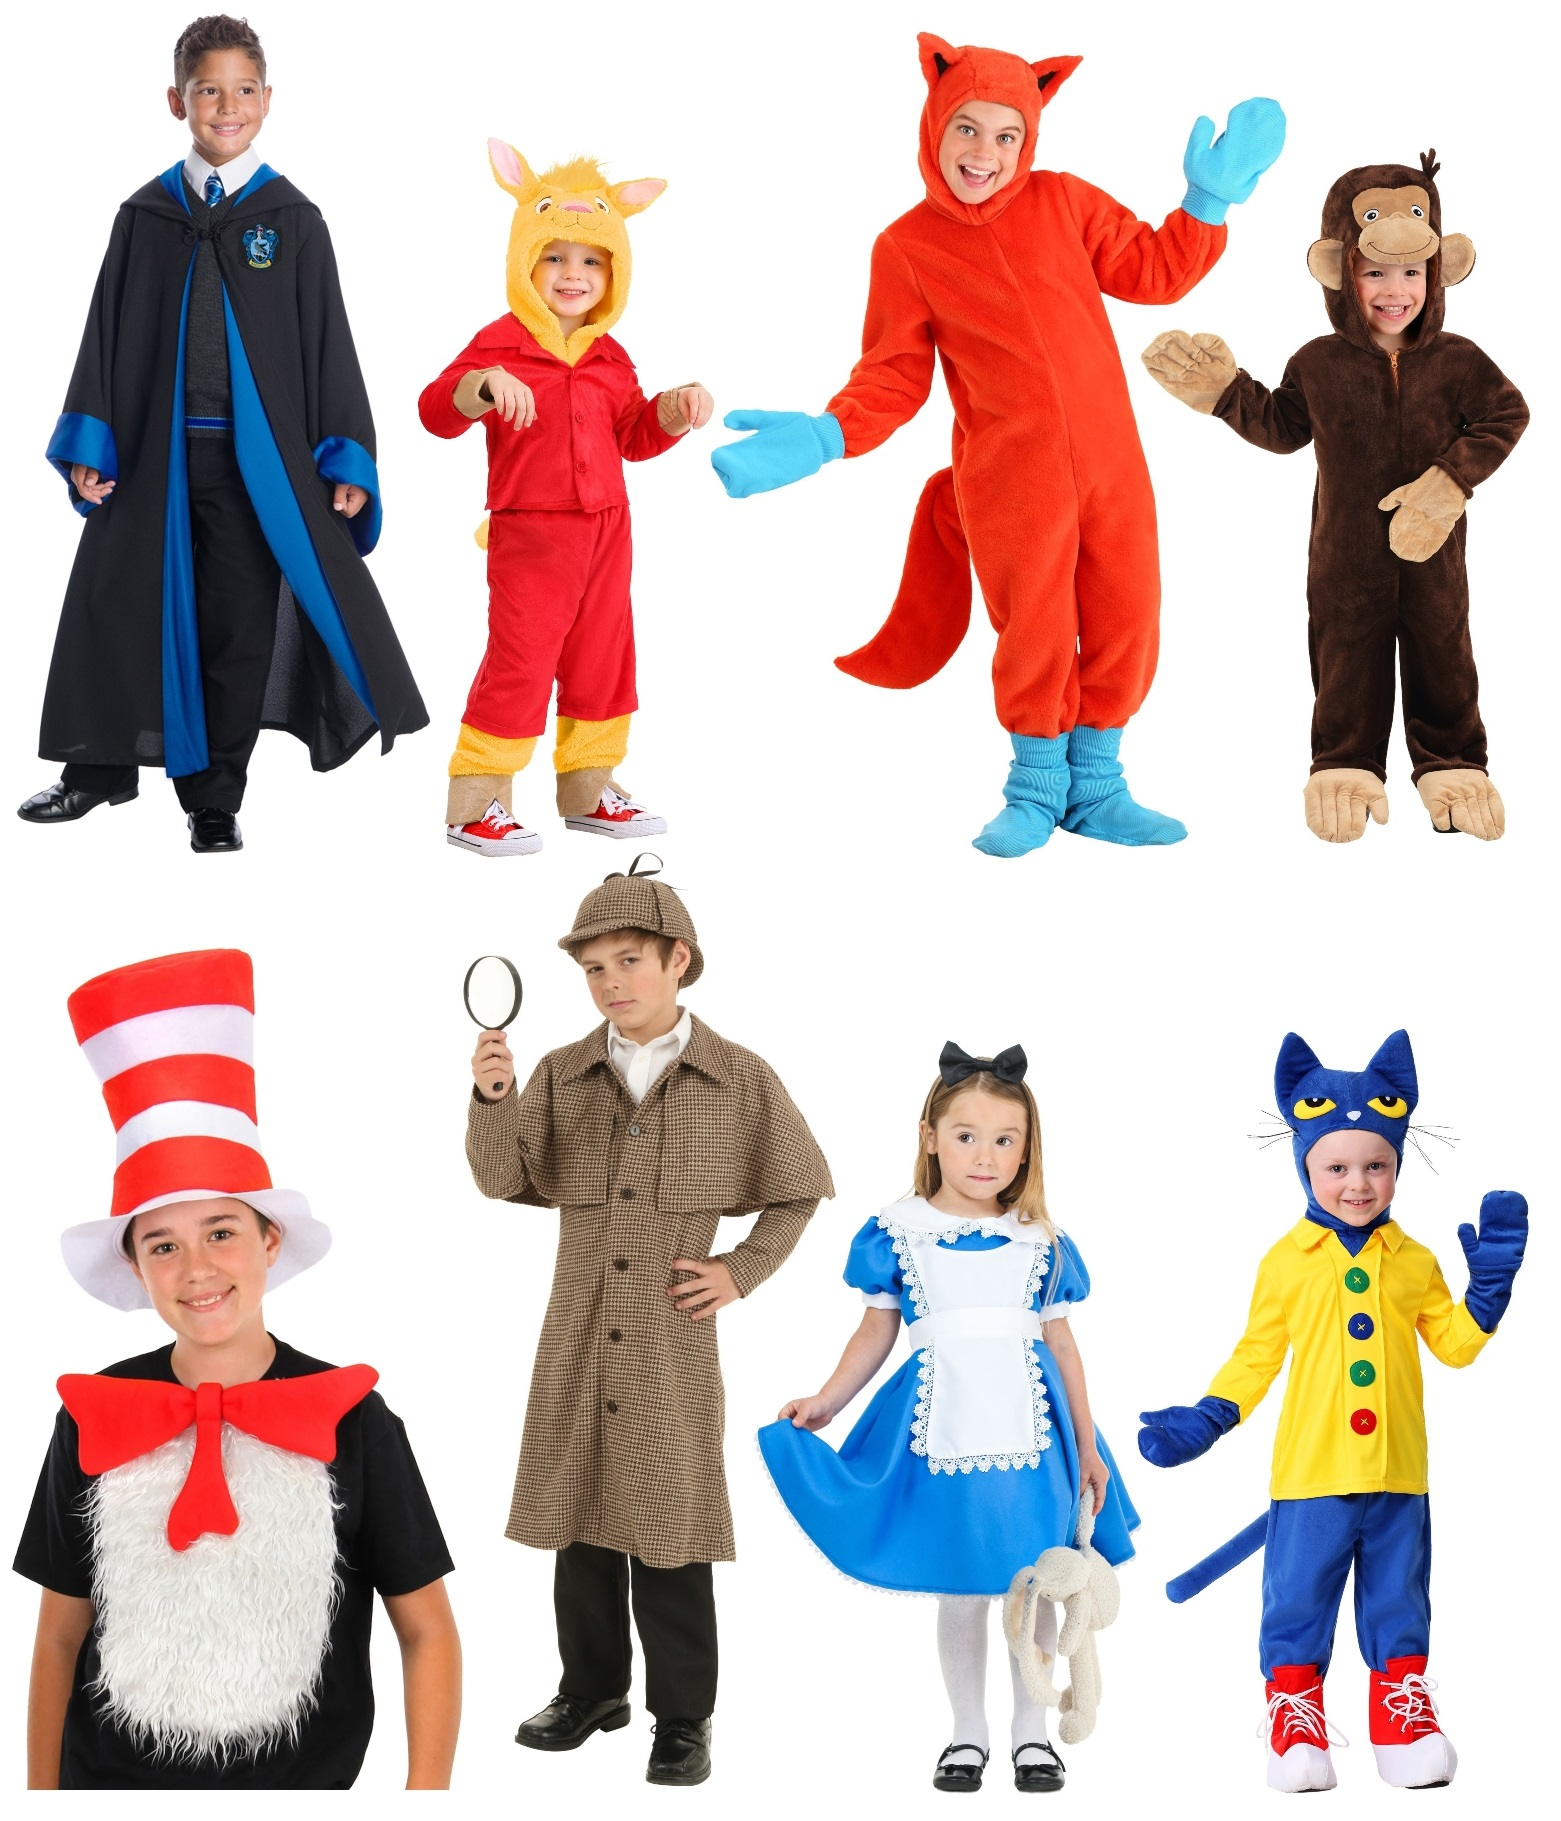 Book Character Costumes for Children